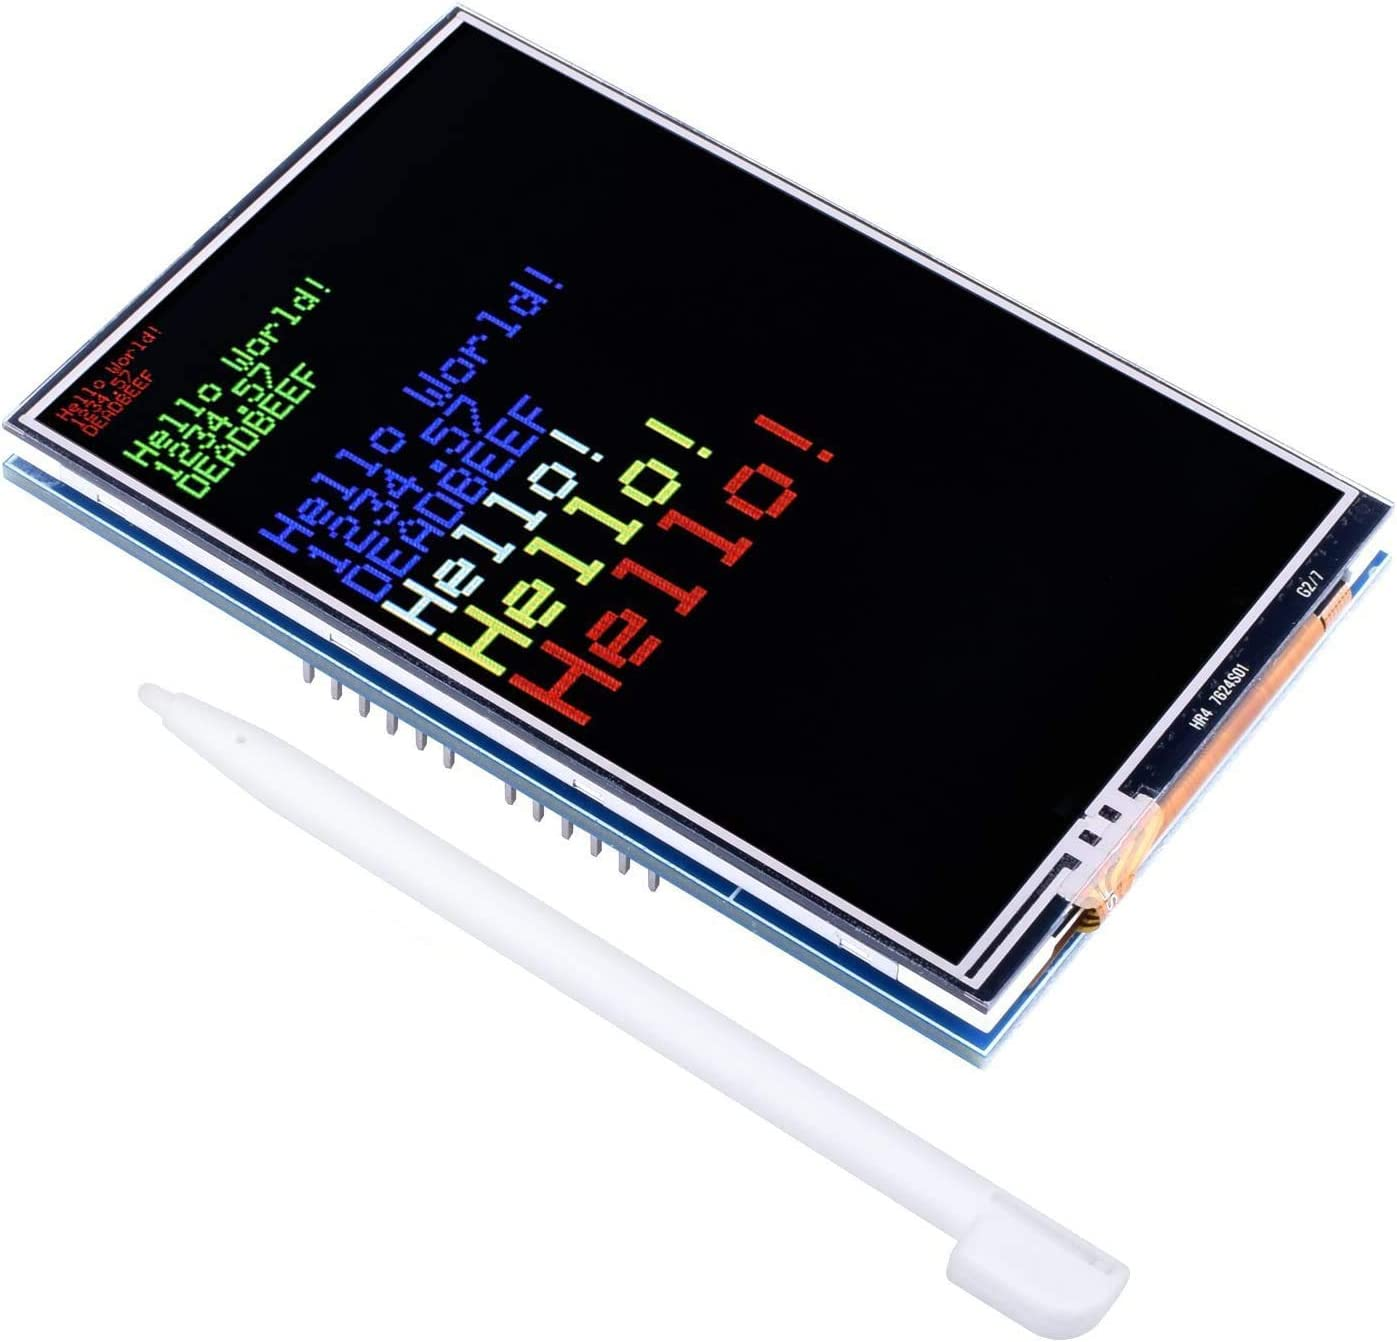 Kuman 3.5 inch TFT Touch Screen with SD Card Socket Compatible for Arduino Mega2560 Board SC3A-1